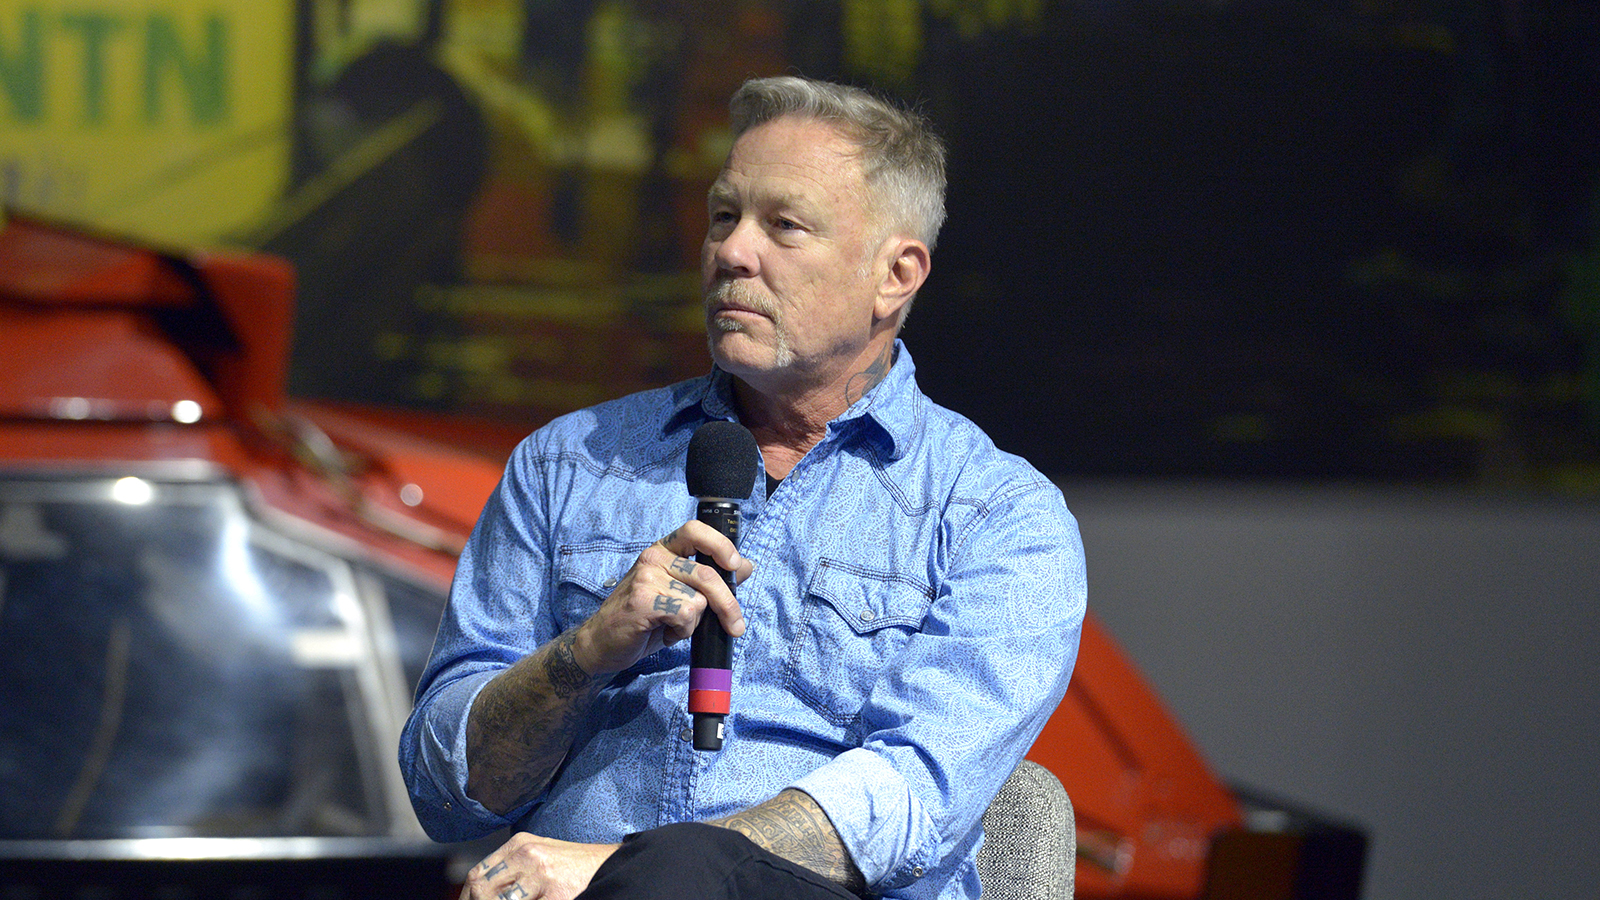 James Hetfield Makes First Post Rehab Appearance At Custom Car Exhibit Revolver